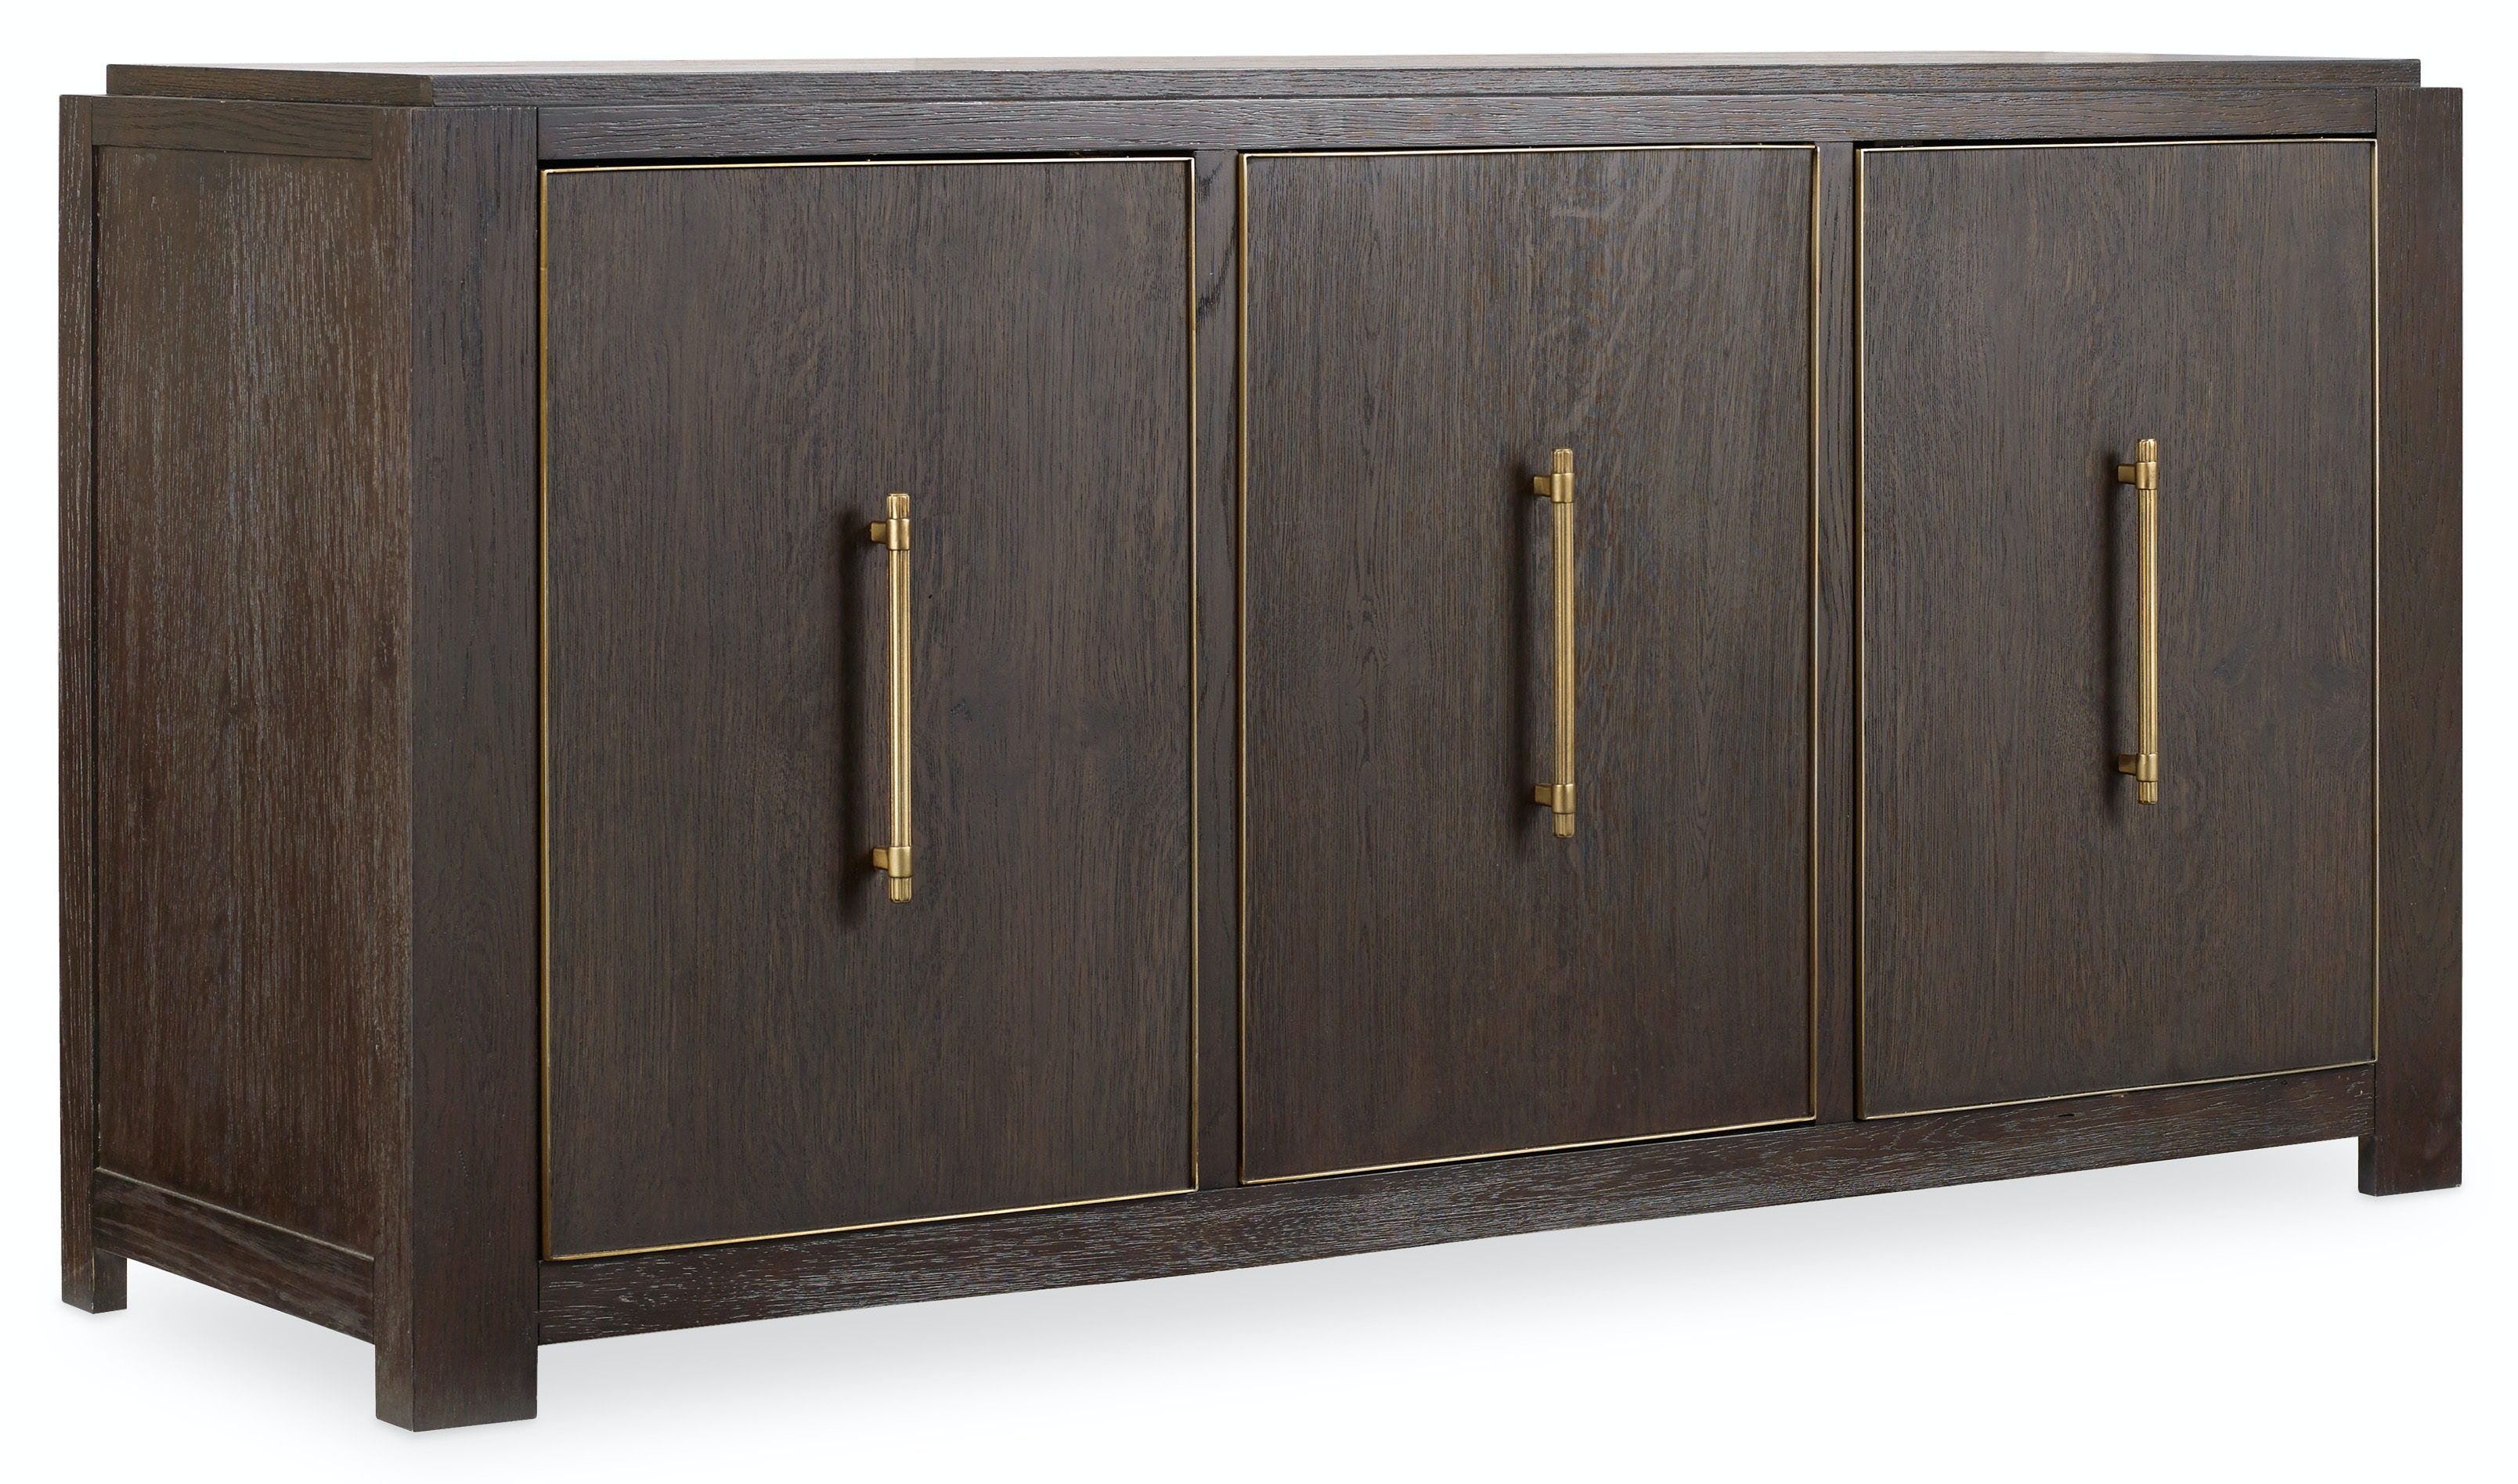 Hooker Furniture Curata Buffet/Credenza 1600 75900 DKW